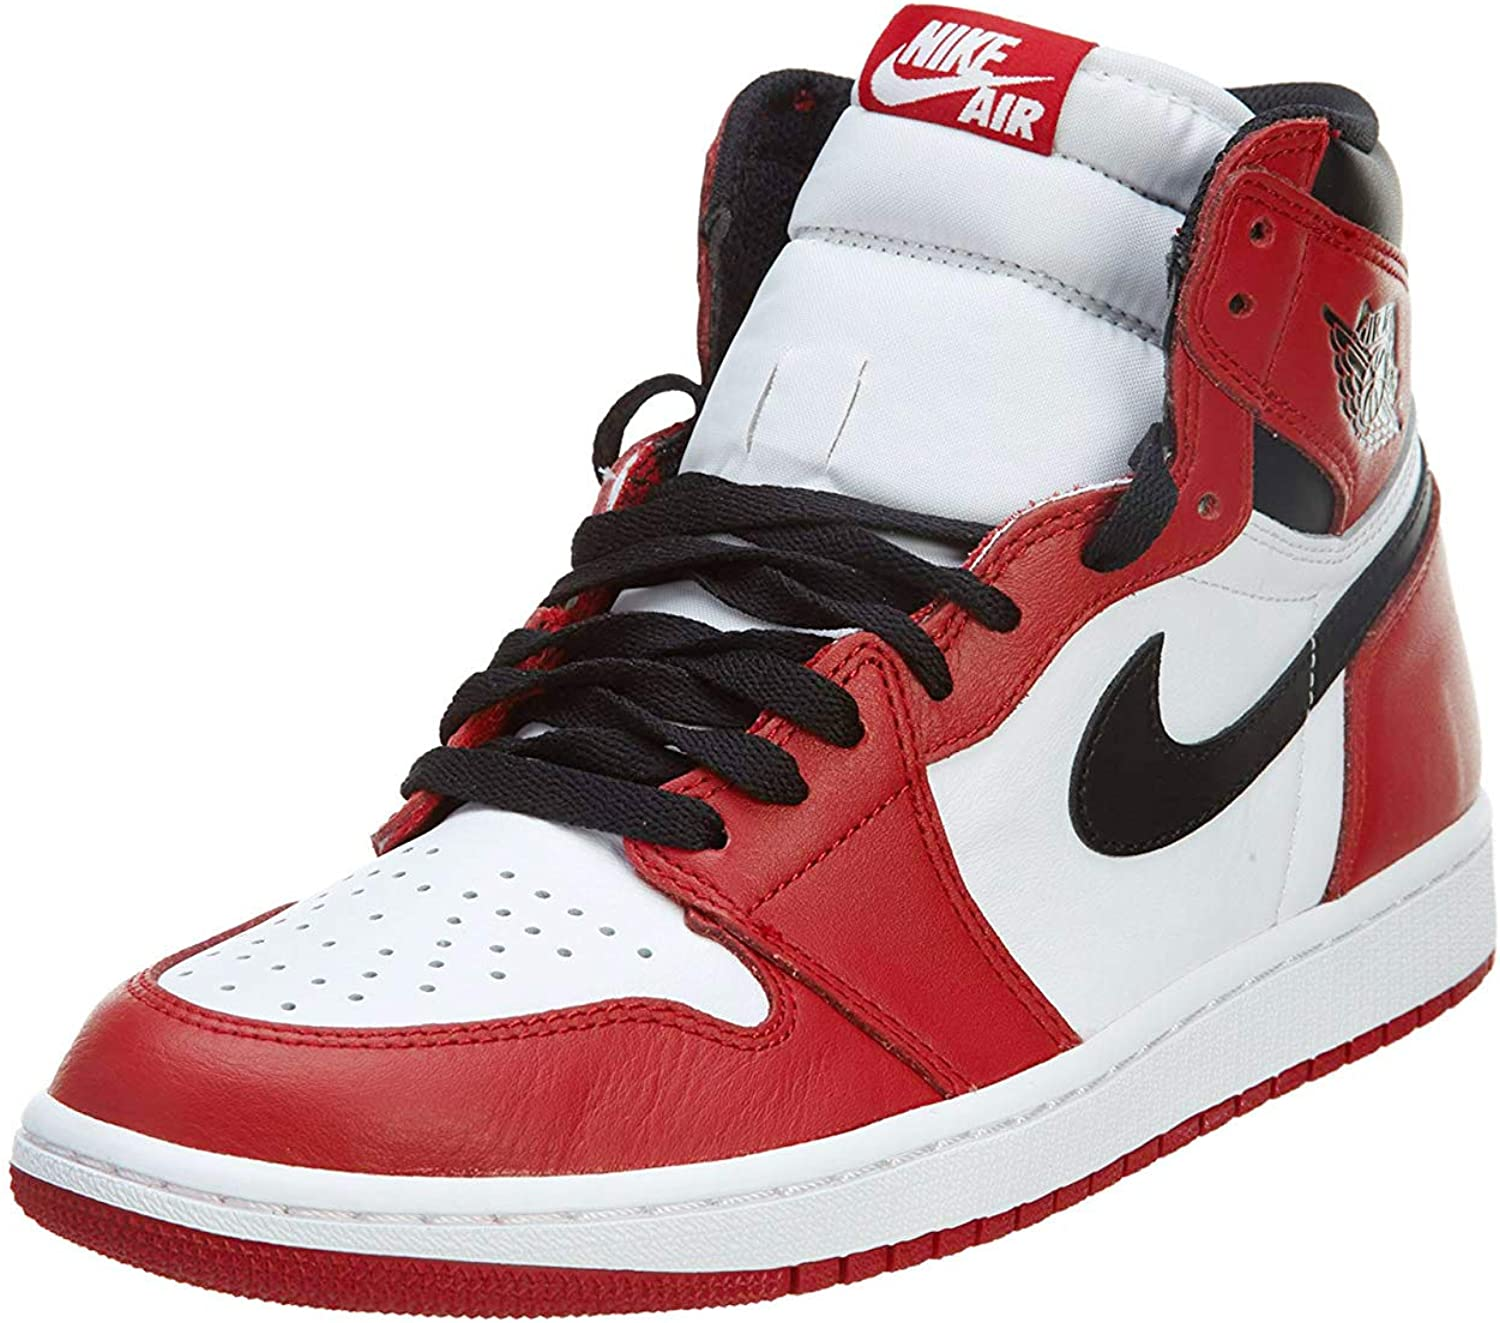 air jordan 1 retro red